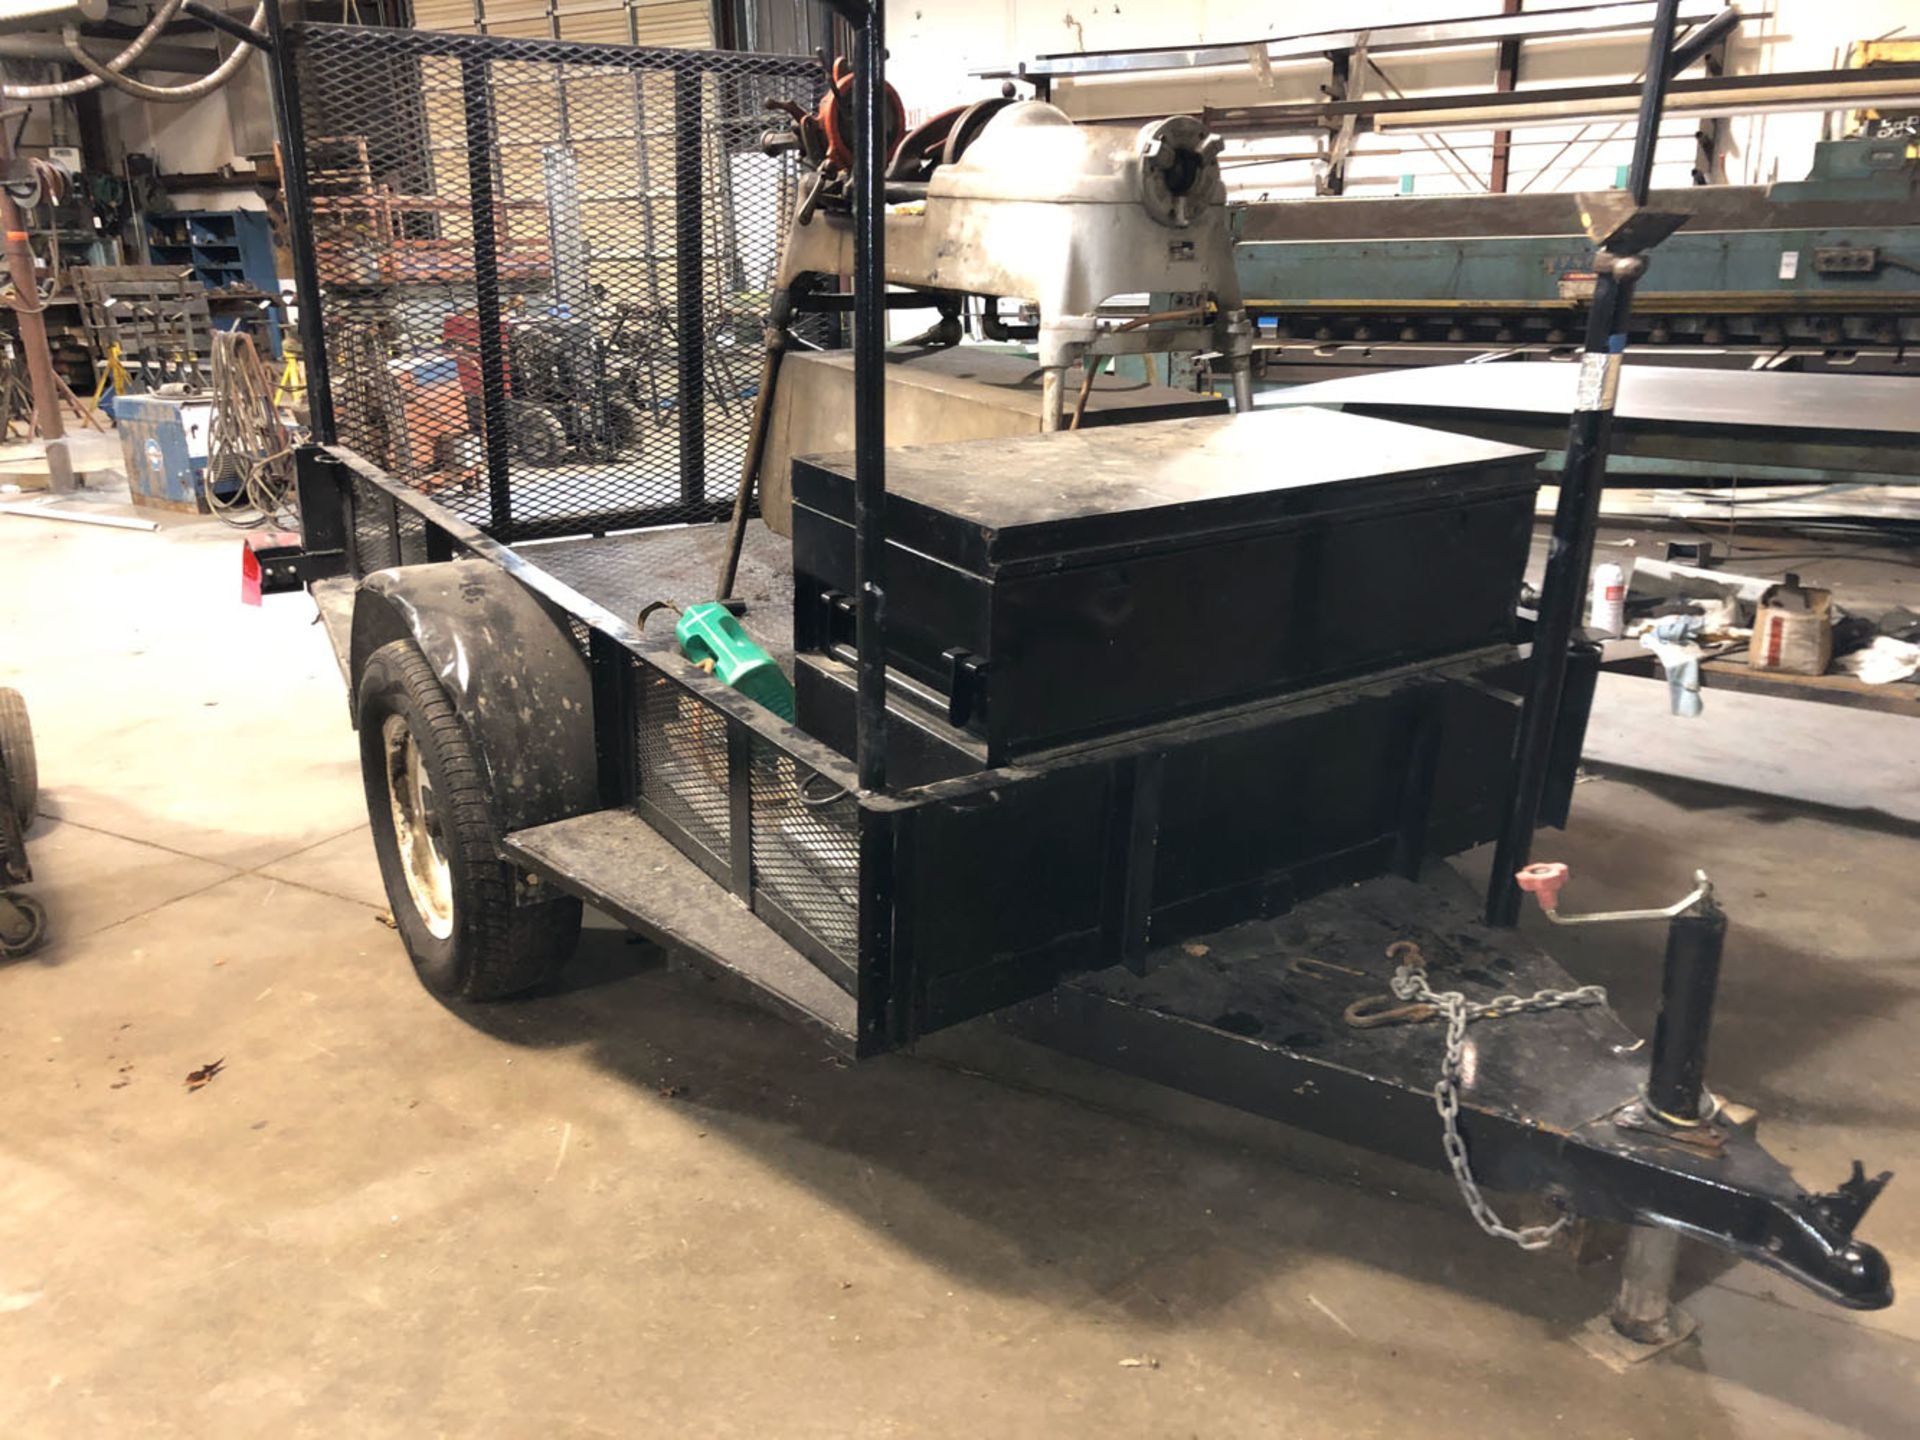 Lot 139 - Trailer, Single Axle, 5X8 with tool box